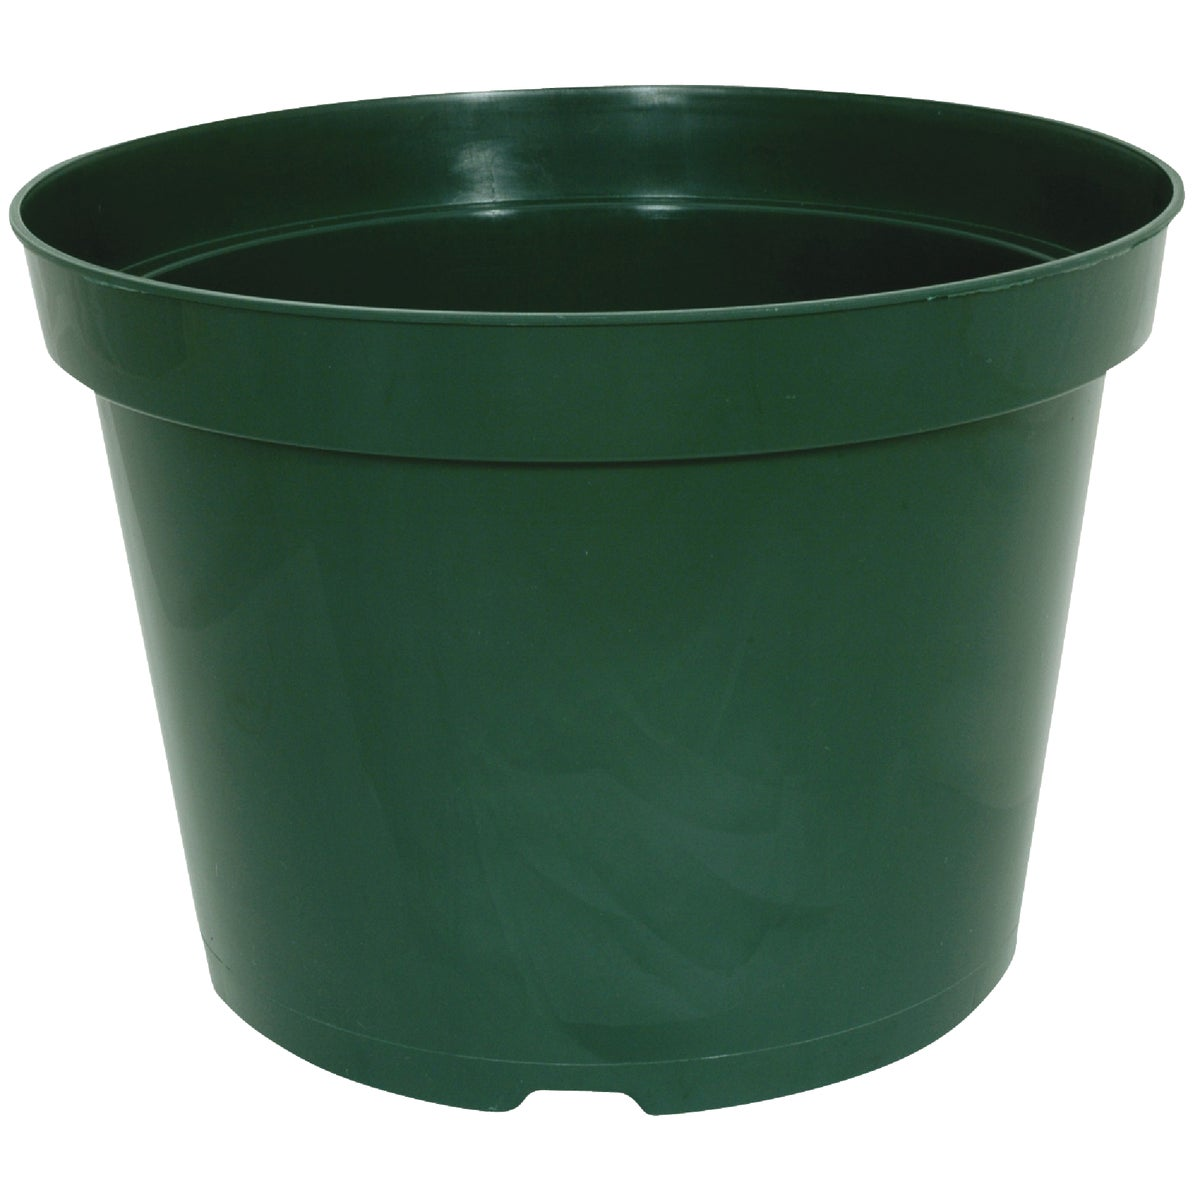 "8"" GREEN GROWER POT - AZE08000B71 by Myers Industries Inc"